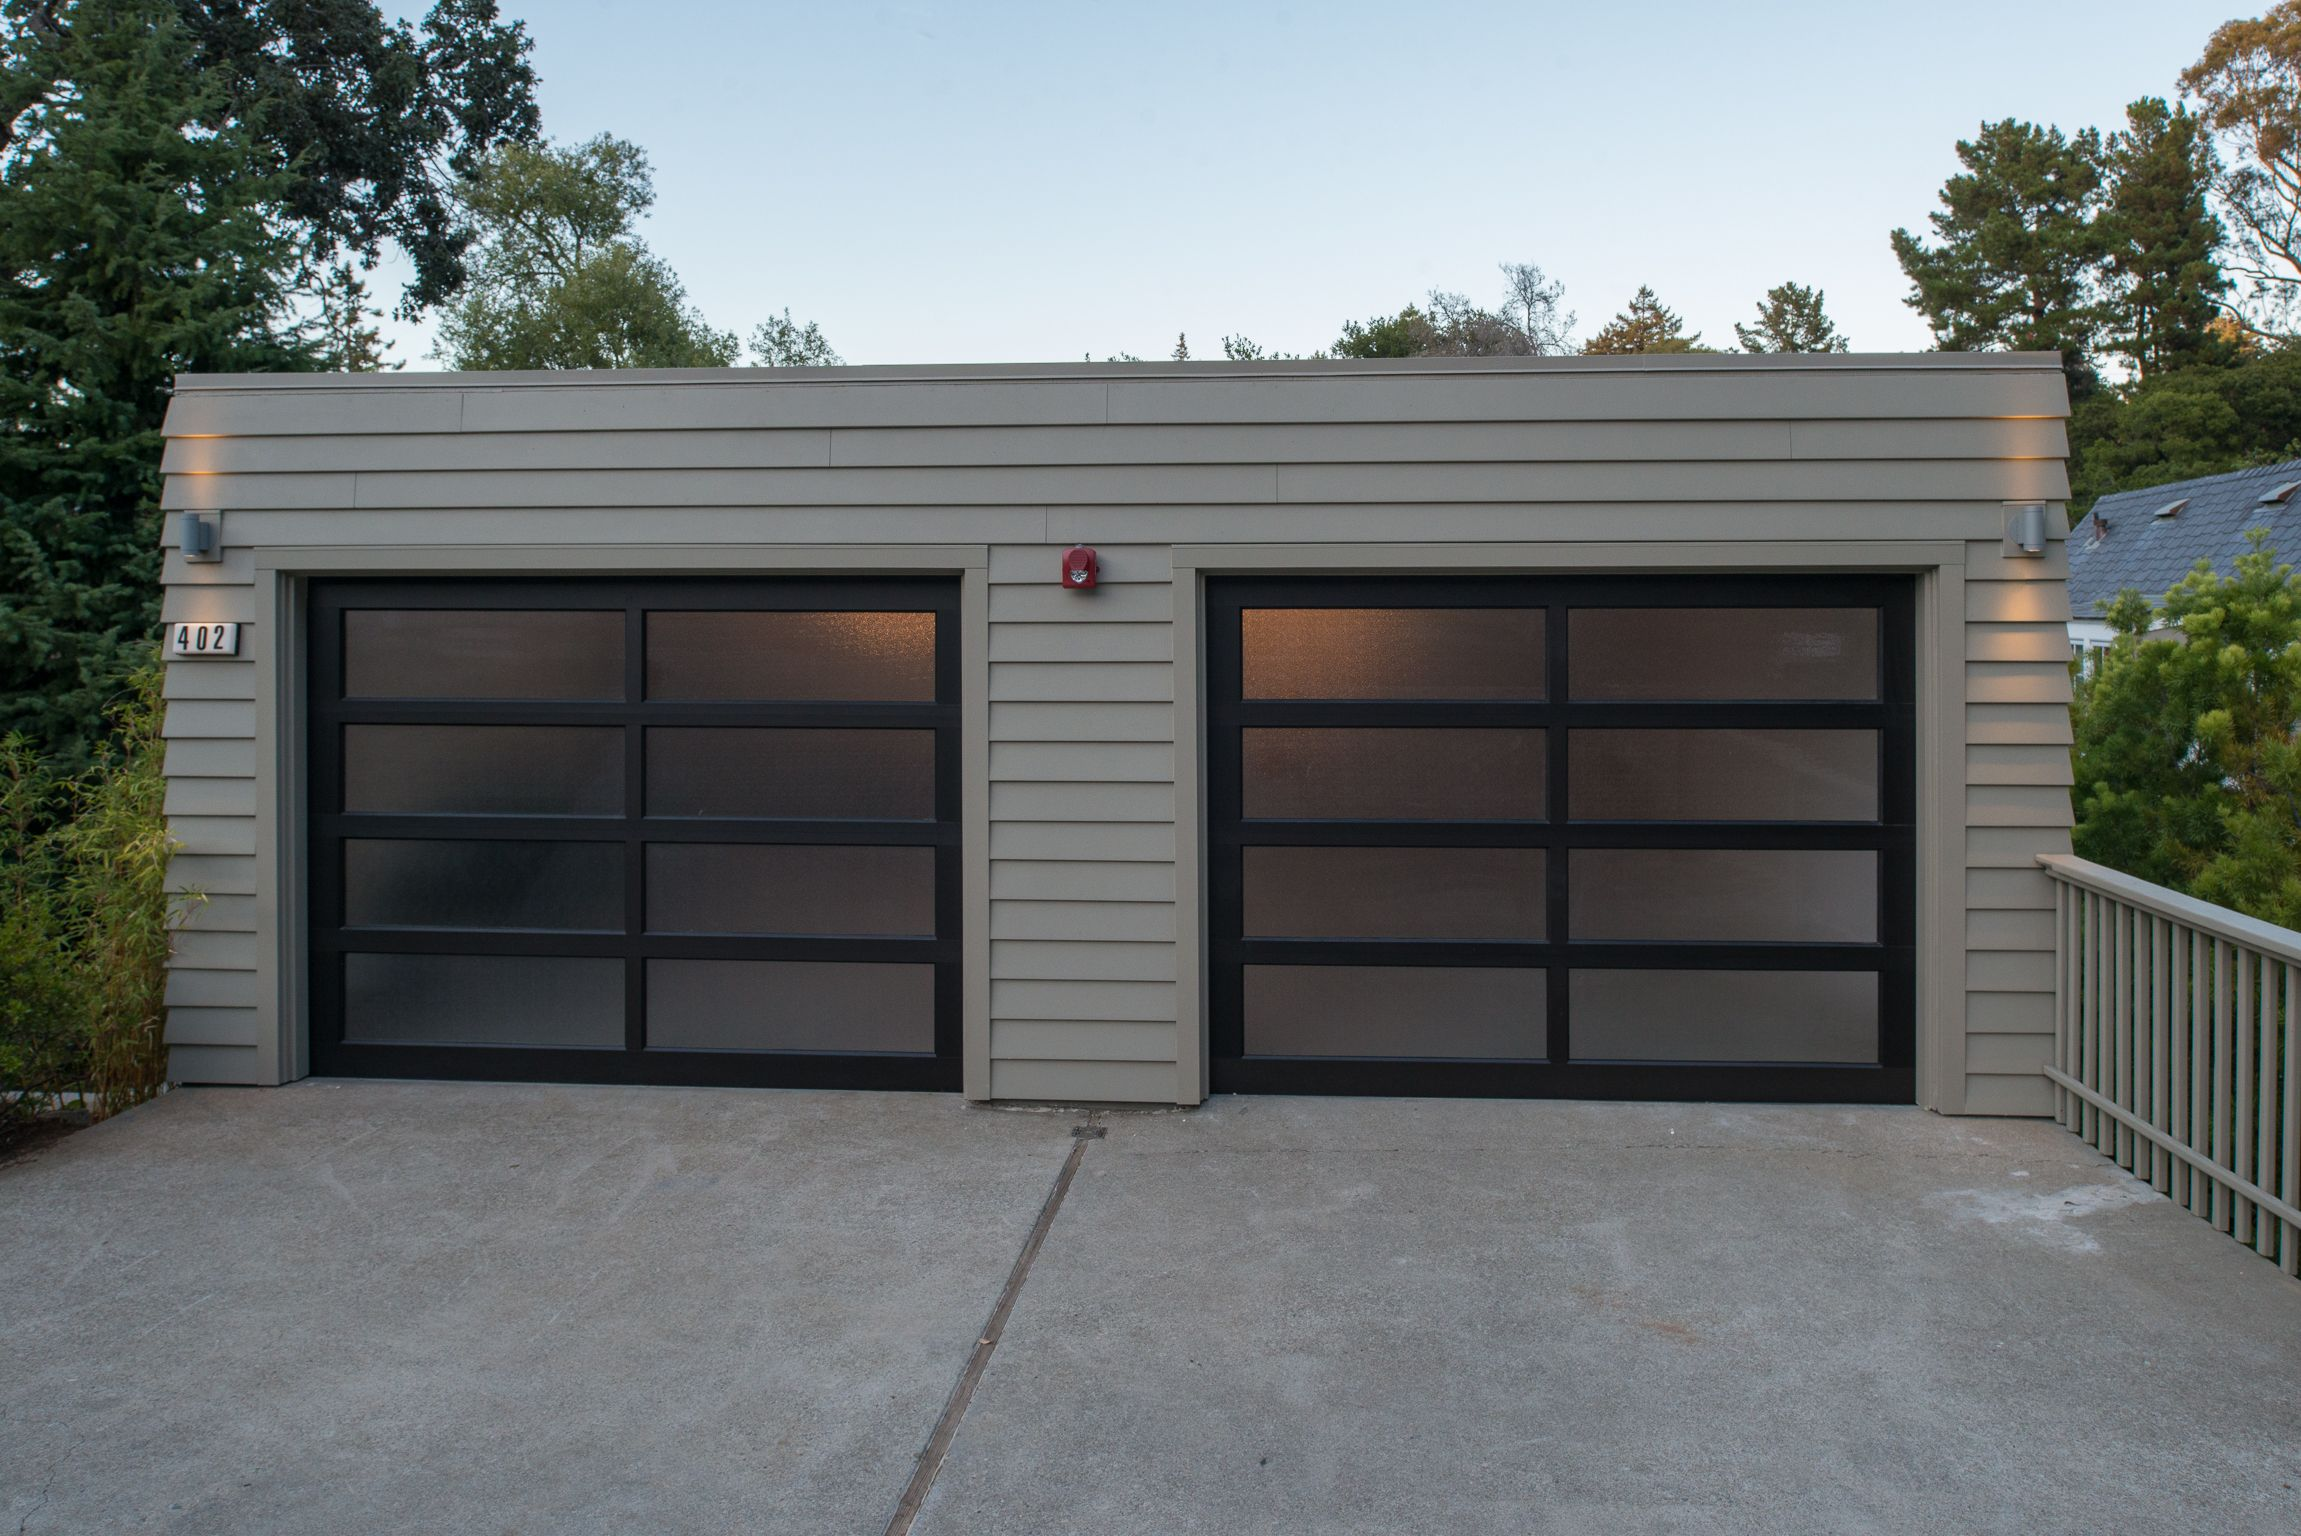 More Ideas Below How To Build Detached Garage Ideas Detached Garage 2 Car With Loft Plans Man Unique Garage Doors Contemporary Garage Doors Black Garage Doors